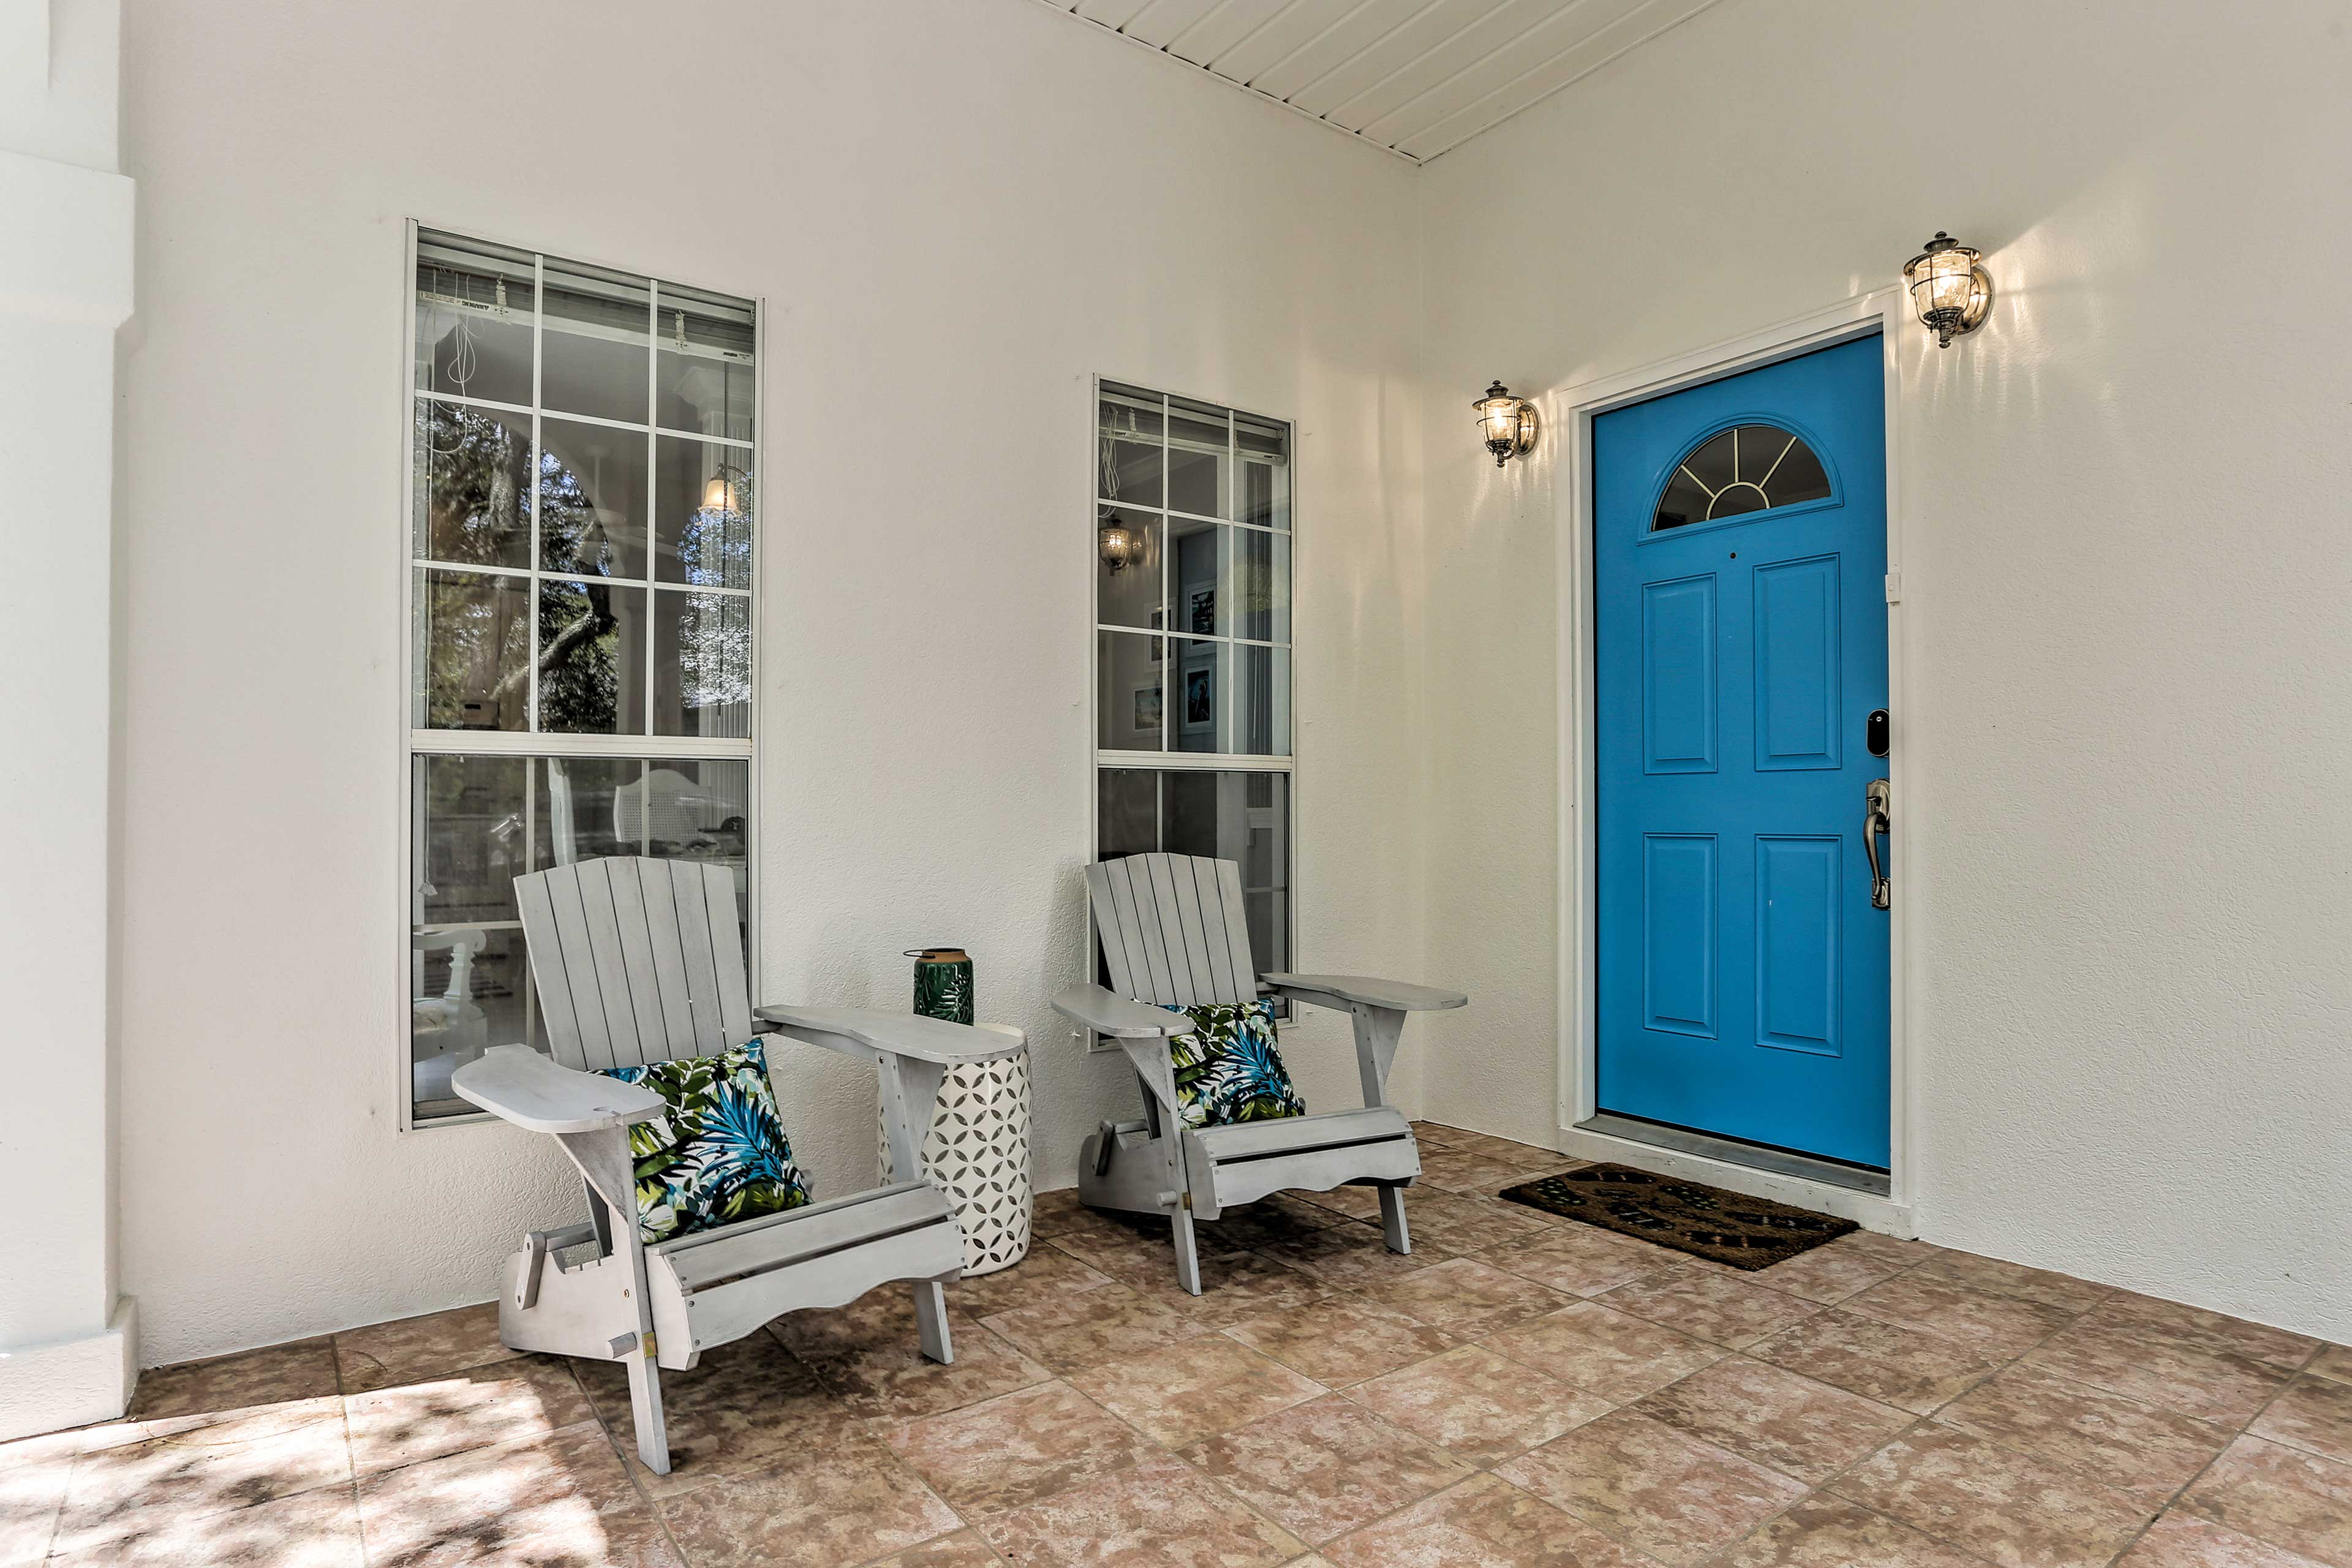 Open the charming bright blue door to begin your stay.